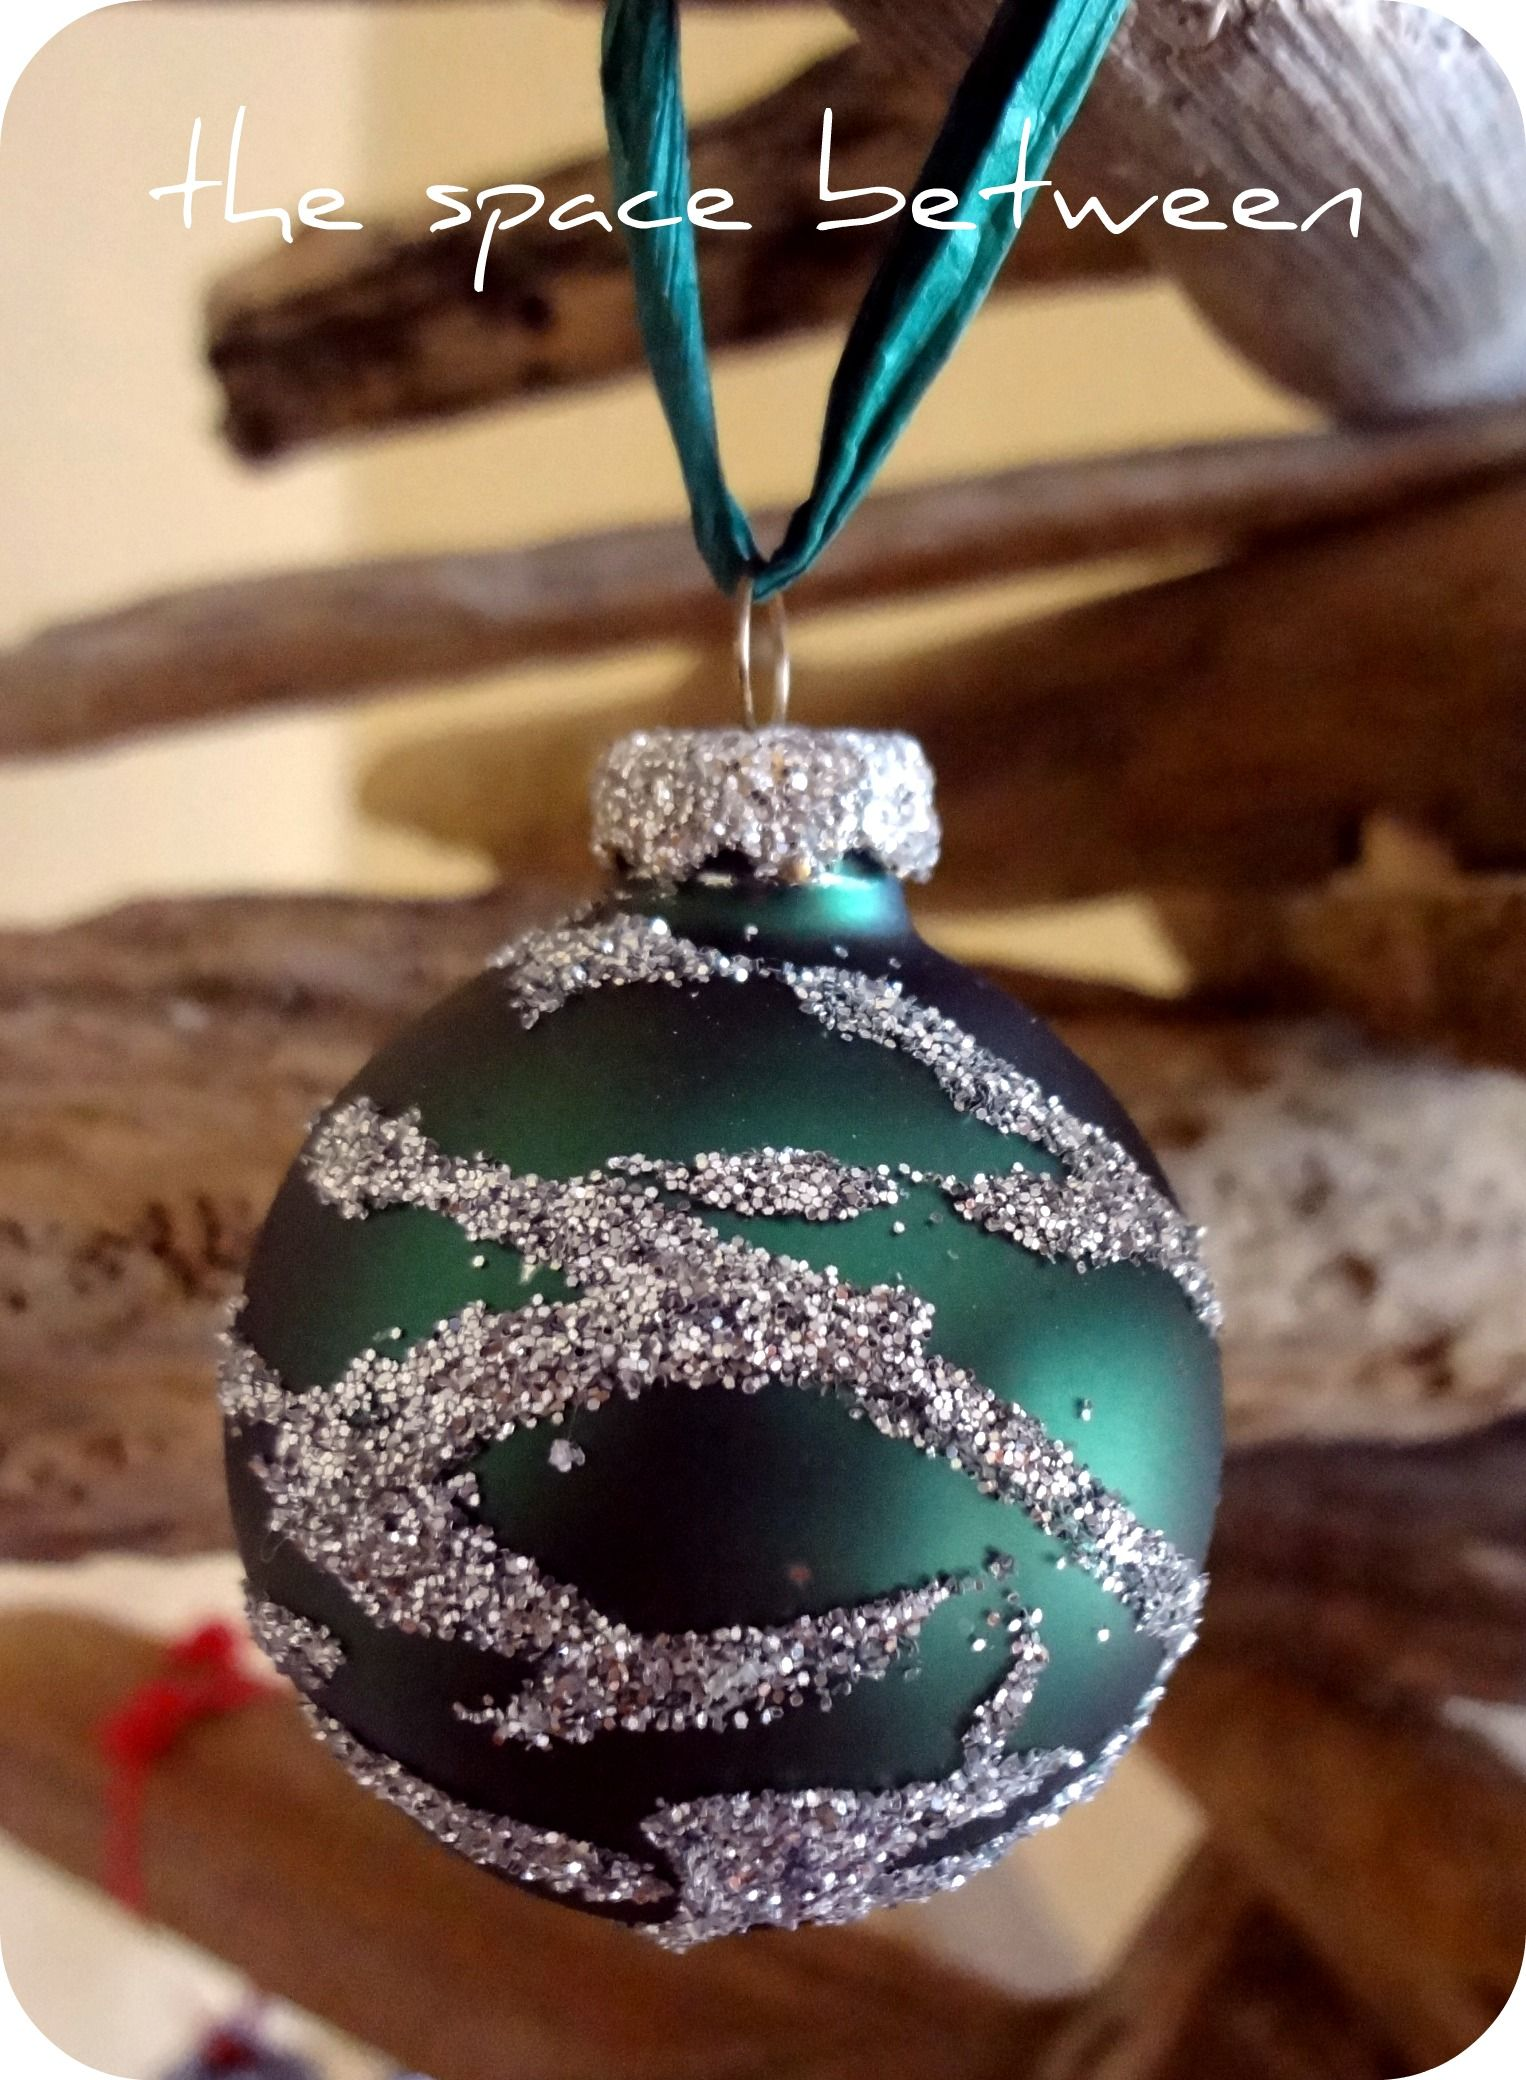 Glitter Makes Everything Better The Space Between Handmade Christmas Ornaments Festive Holiday Decor Christmas Ornaments